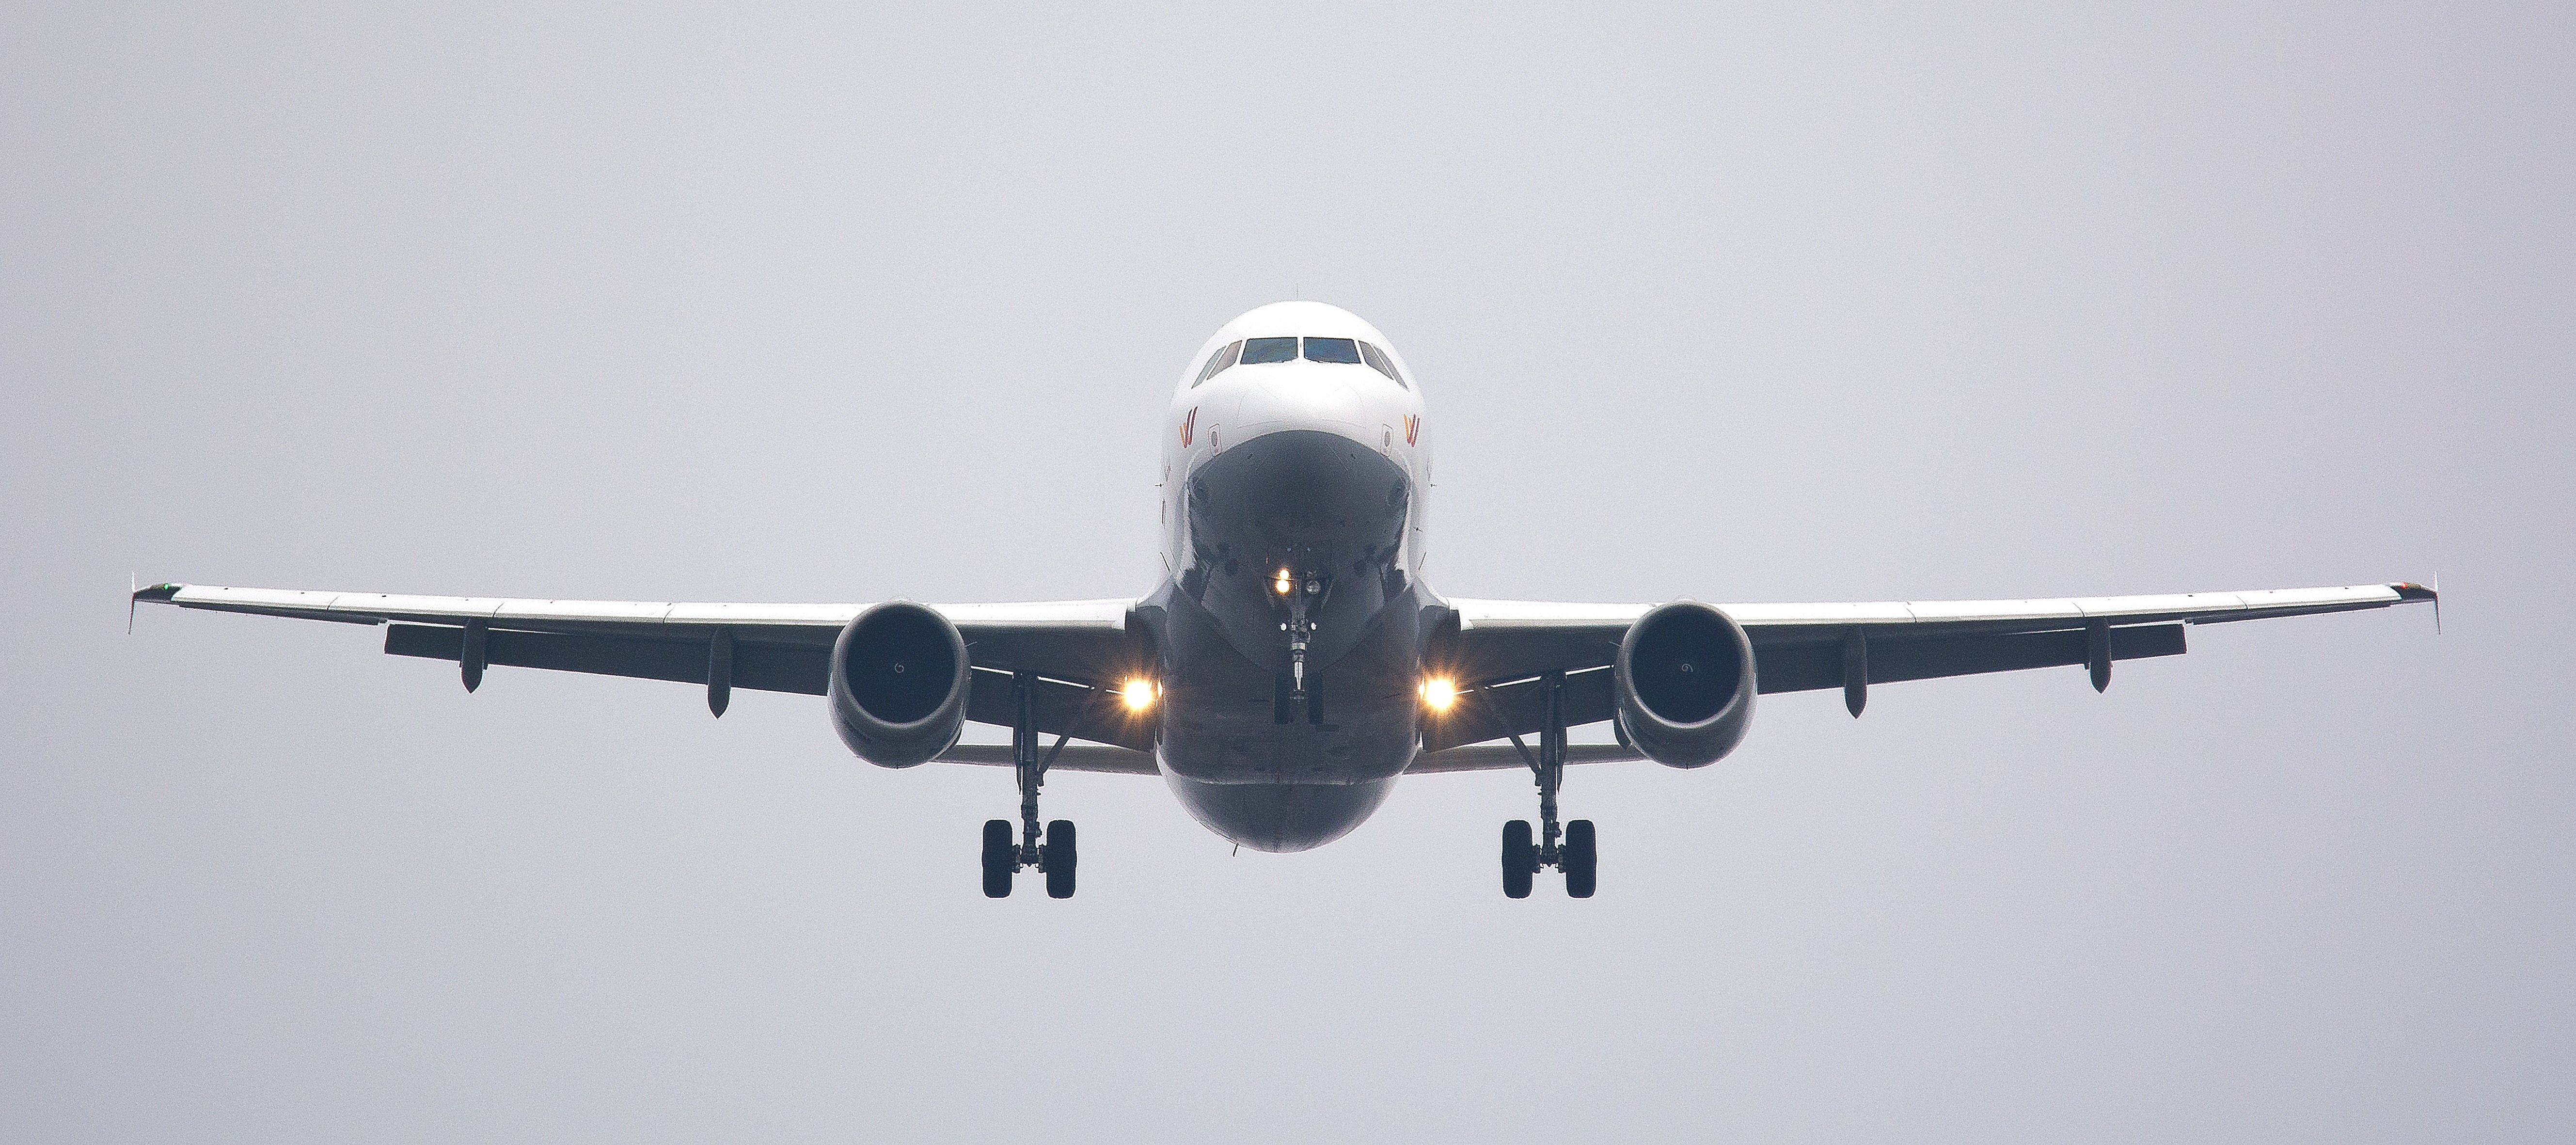 Dubai to host world's largest aviation event in next May ...